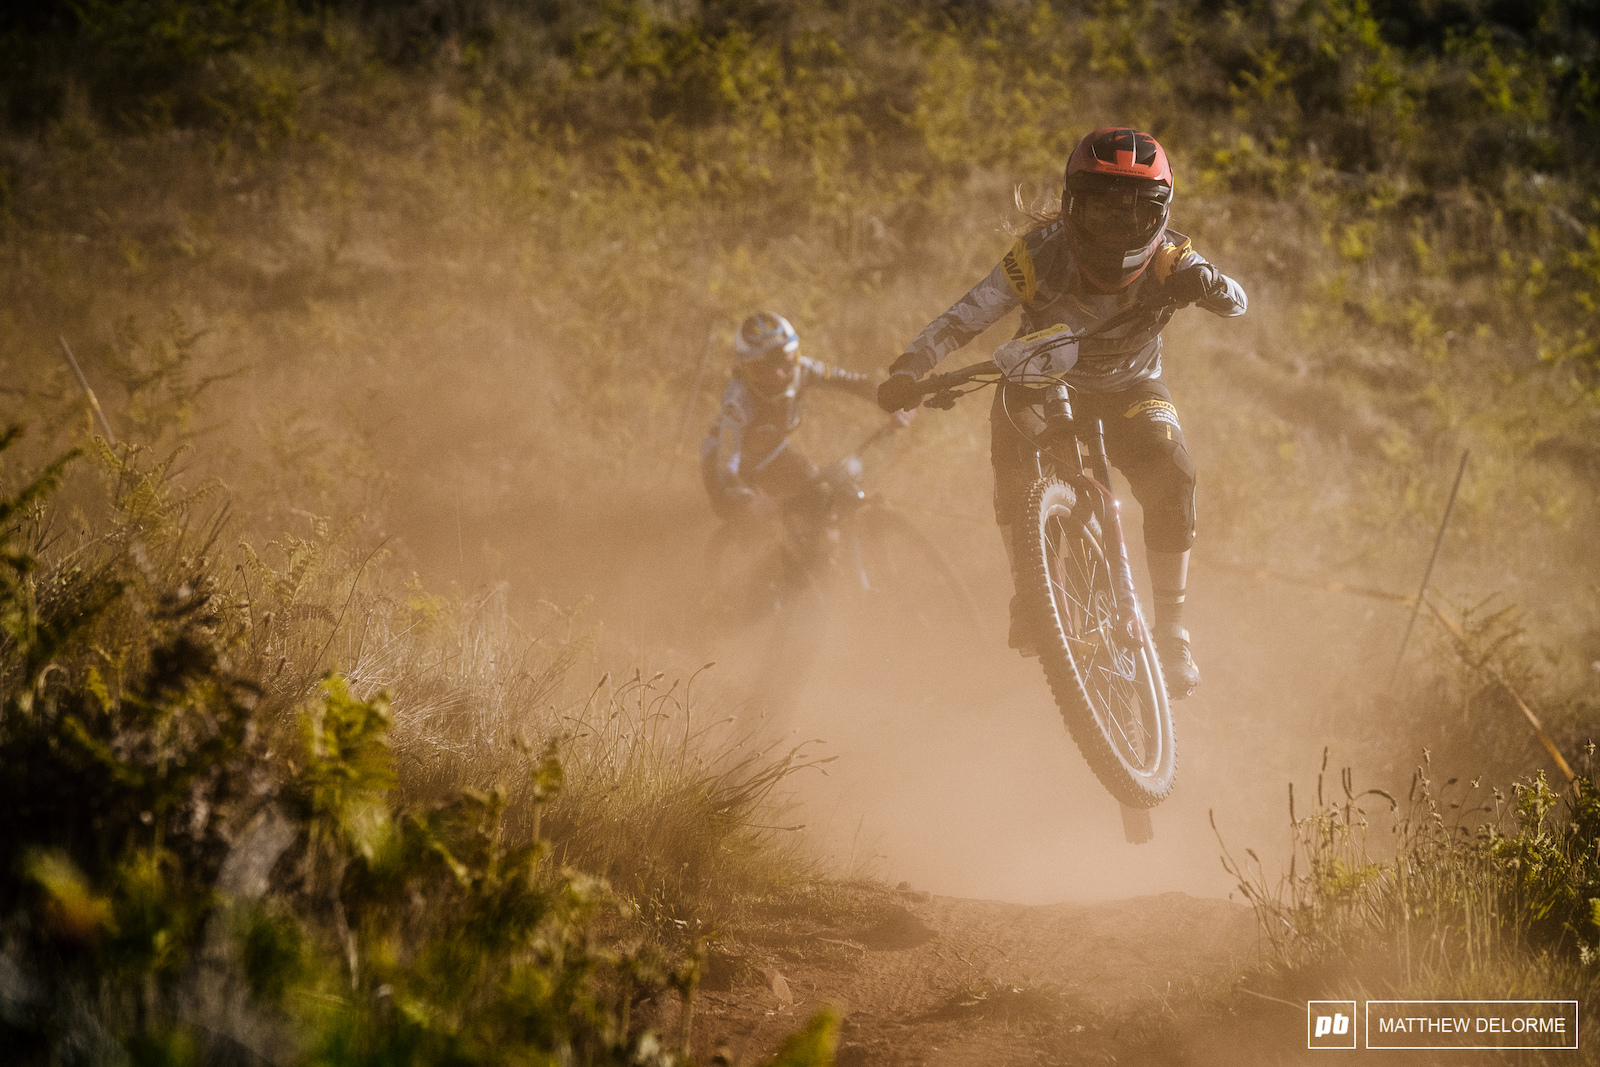 Isabeau finding her way through the dust on stage four.